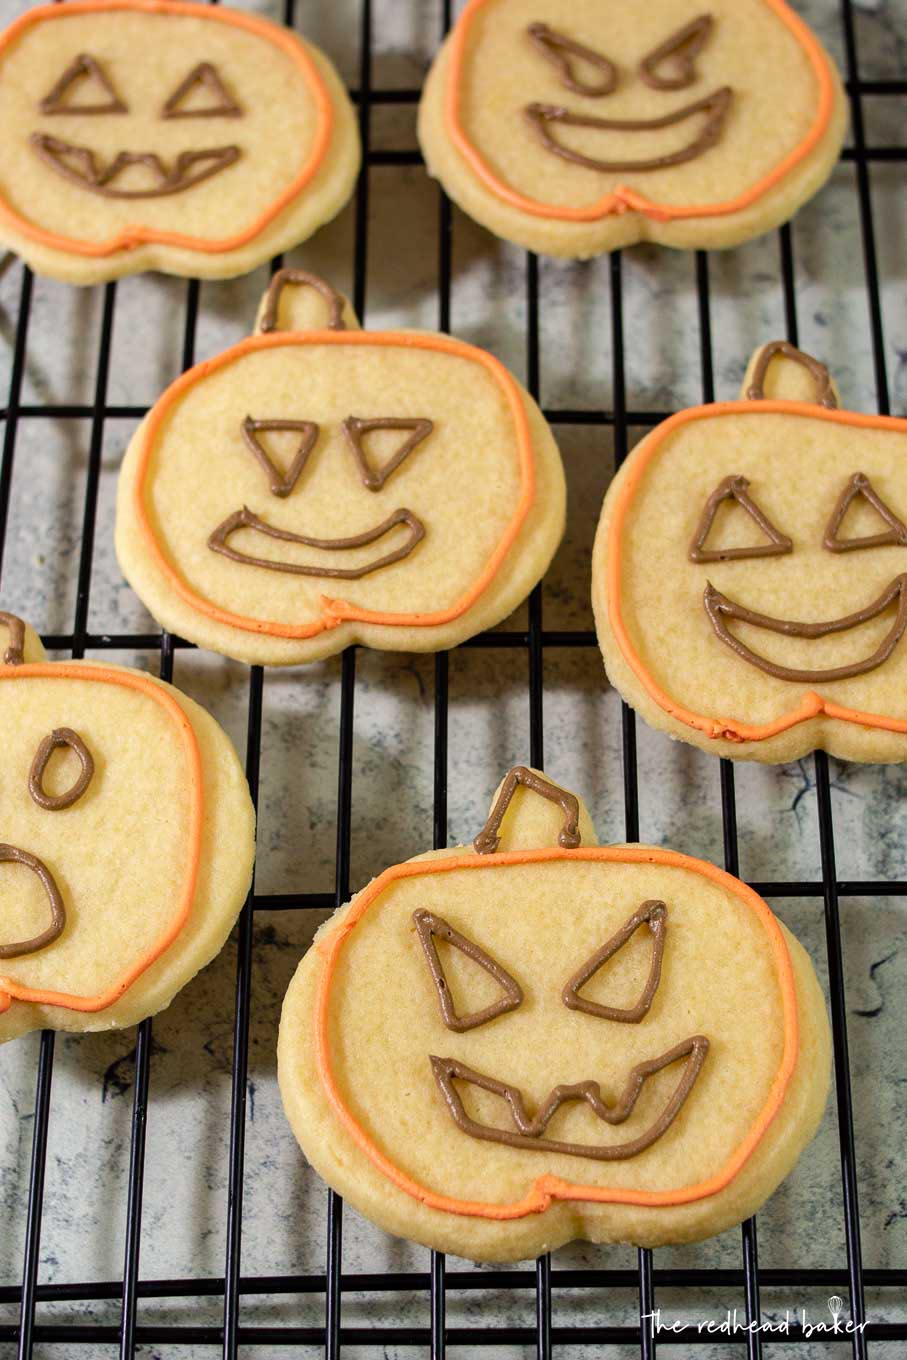 Six jack-o-lantern cookies with orange outlines and brown eyes and mouths